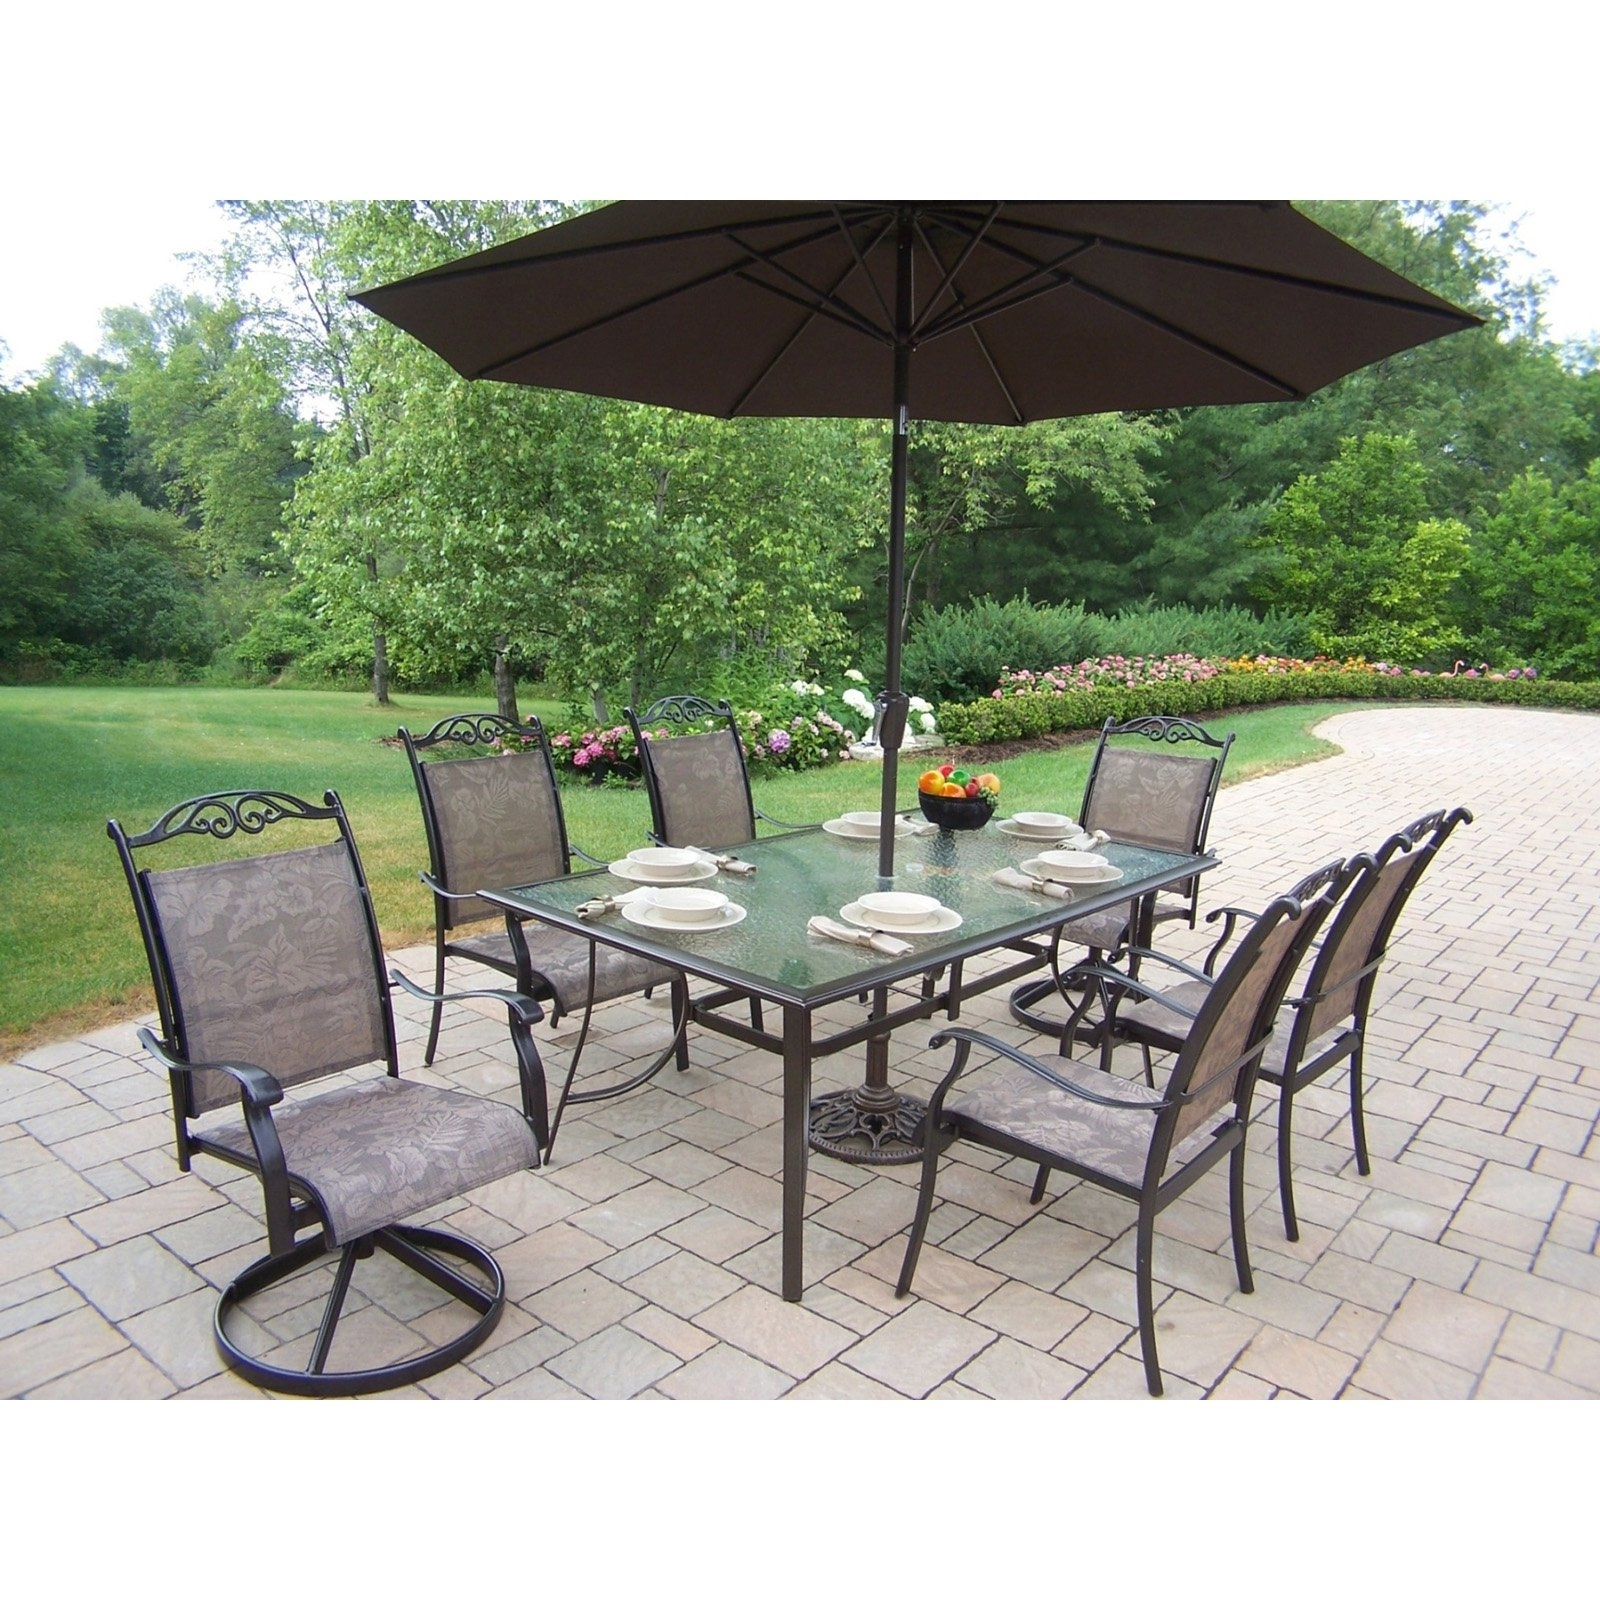 Most Current Patio Ideas Outdoor Dining Sets With Umbrella Small Piece Set Round In Patio Dining Sets With Umbrellas (View 6 of 20)